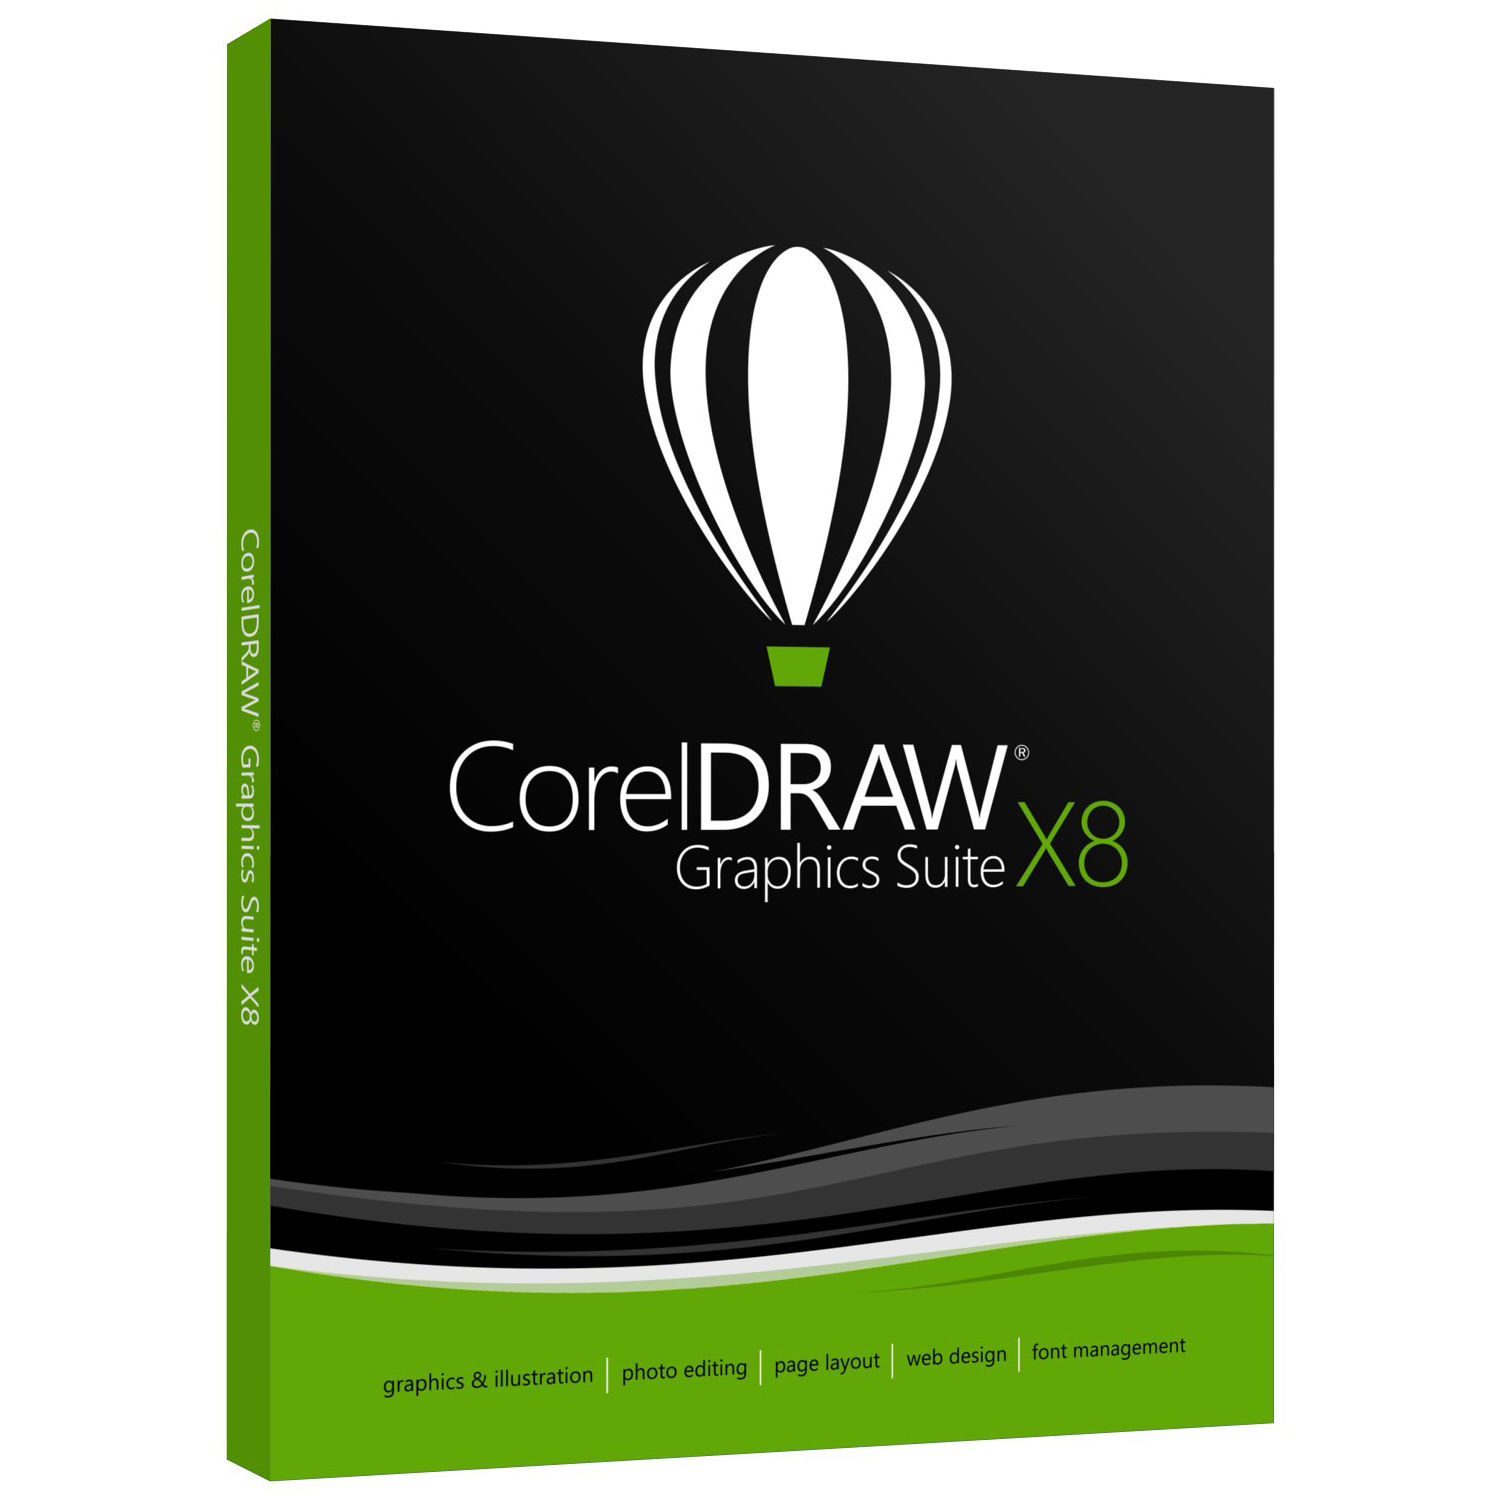 دانلود کرک CorelDRAW Graphics Suite X8 v18.450 x86/x64 – کورل دراو